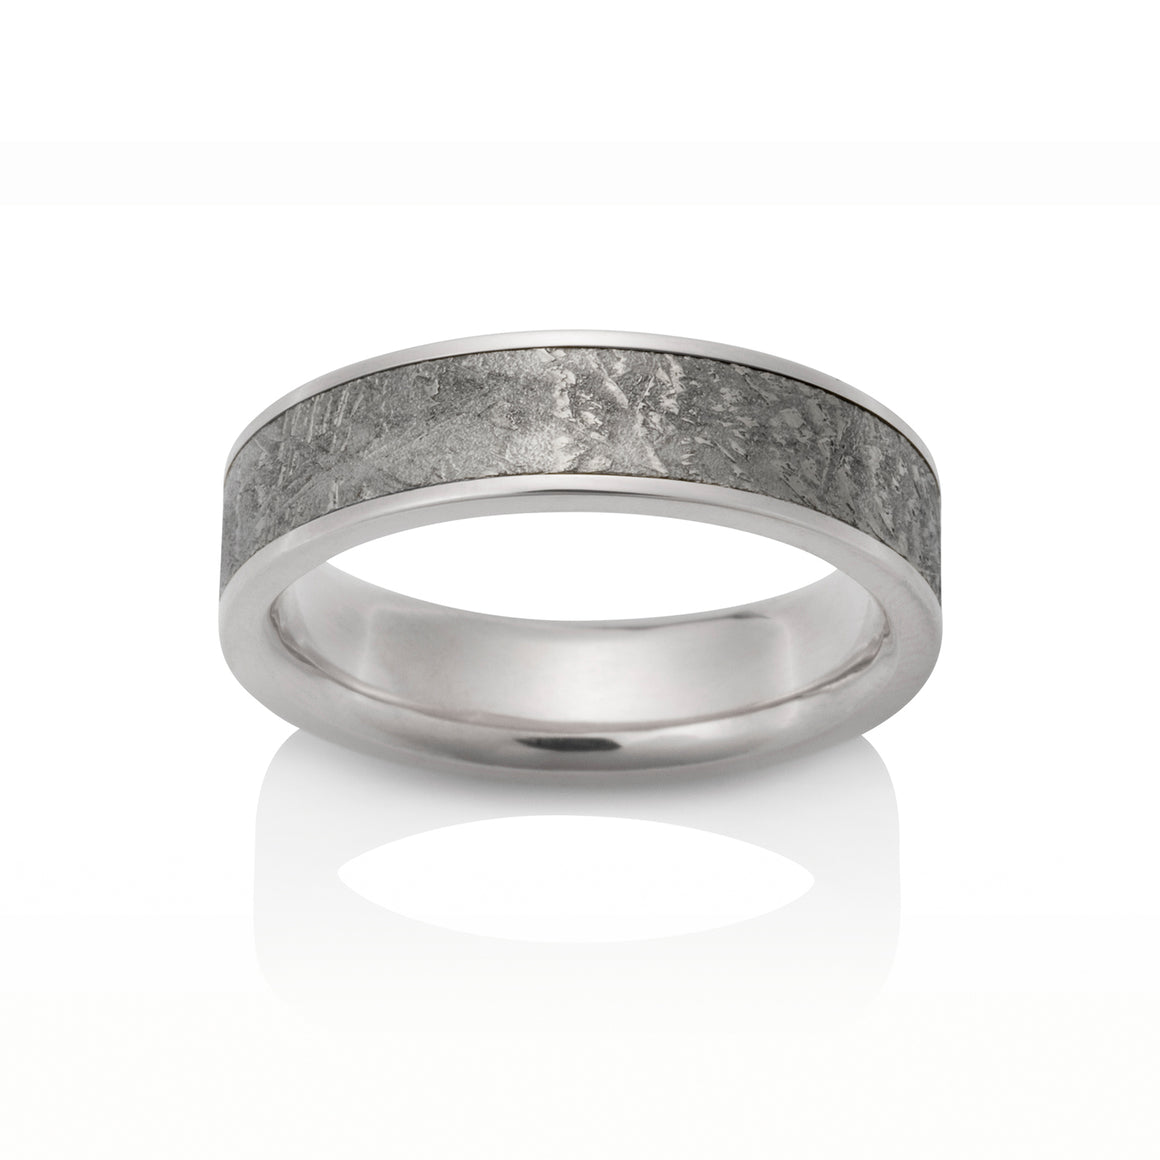 Chris Ploof 18K Palladium White Gold Sirius Meteorite Ring